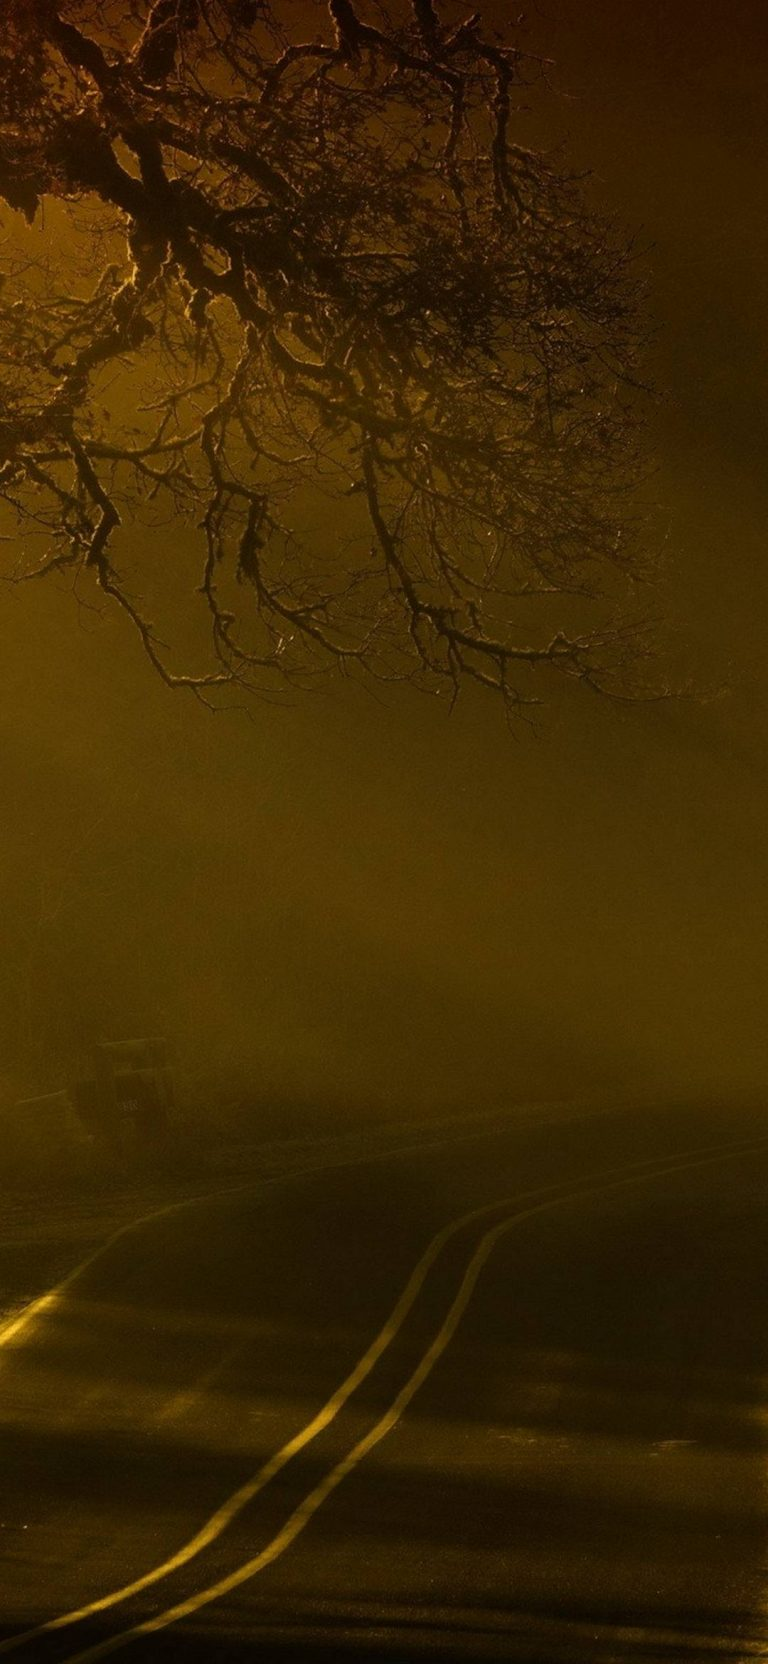 Road Night Fog 1080x2340 768x1664